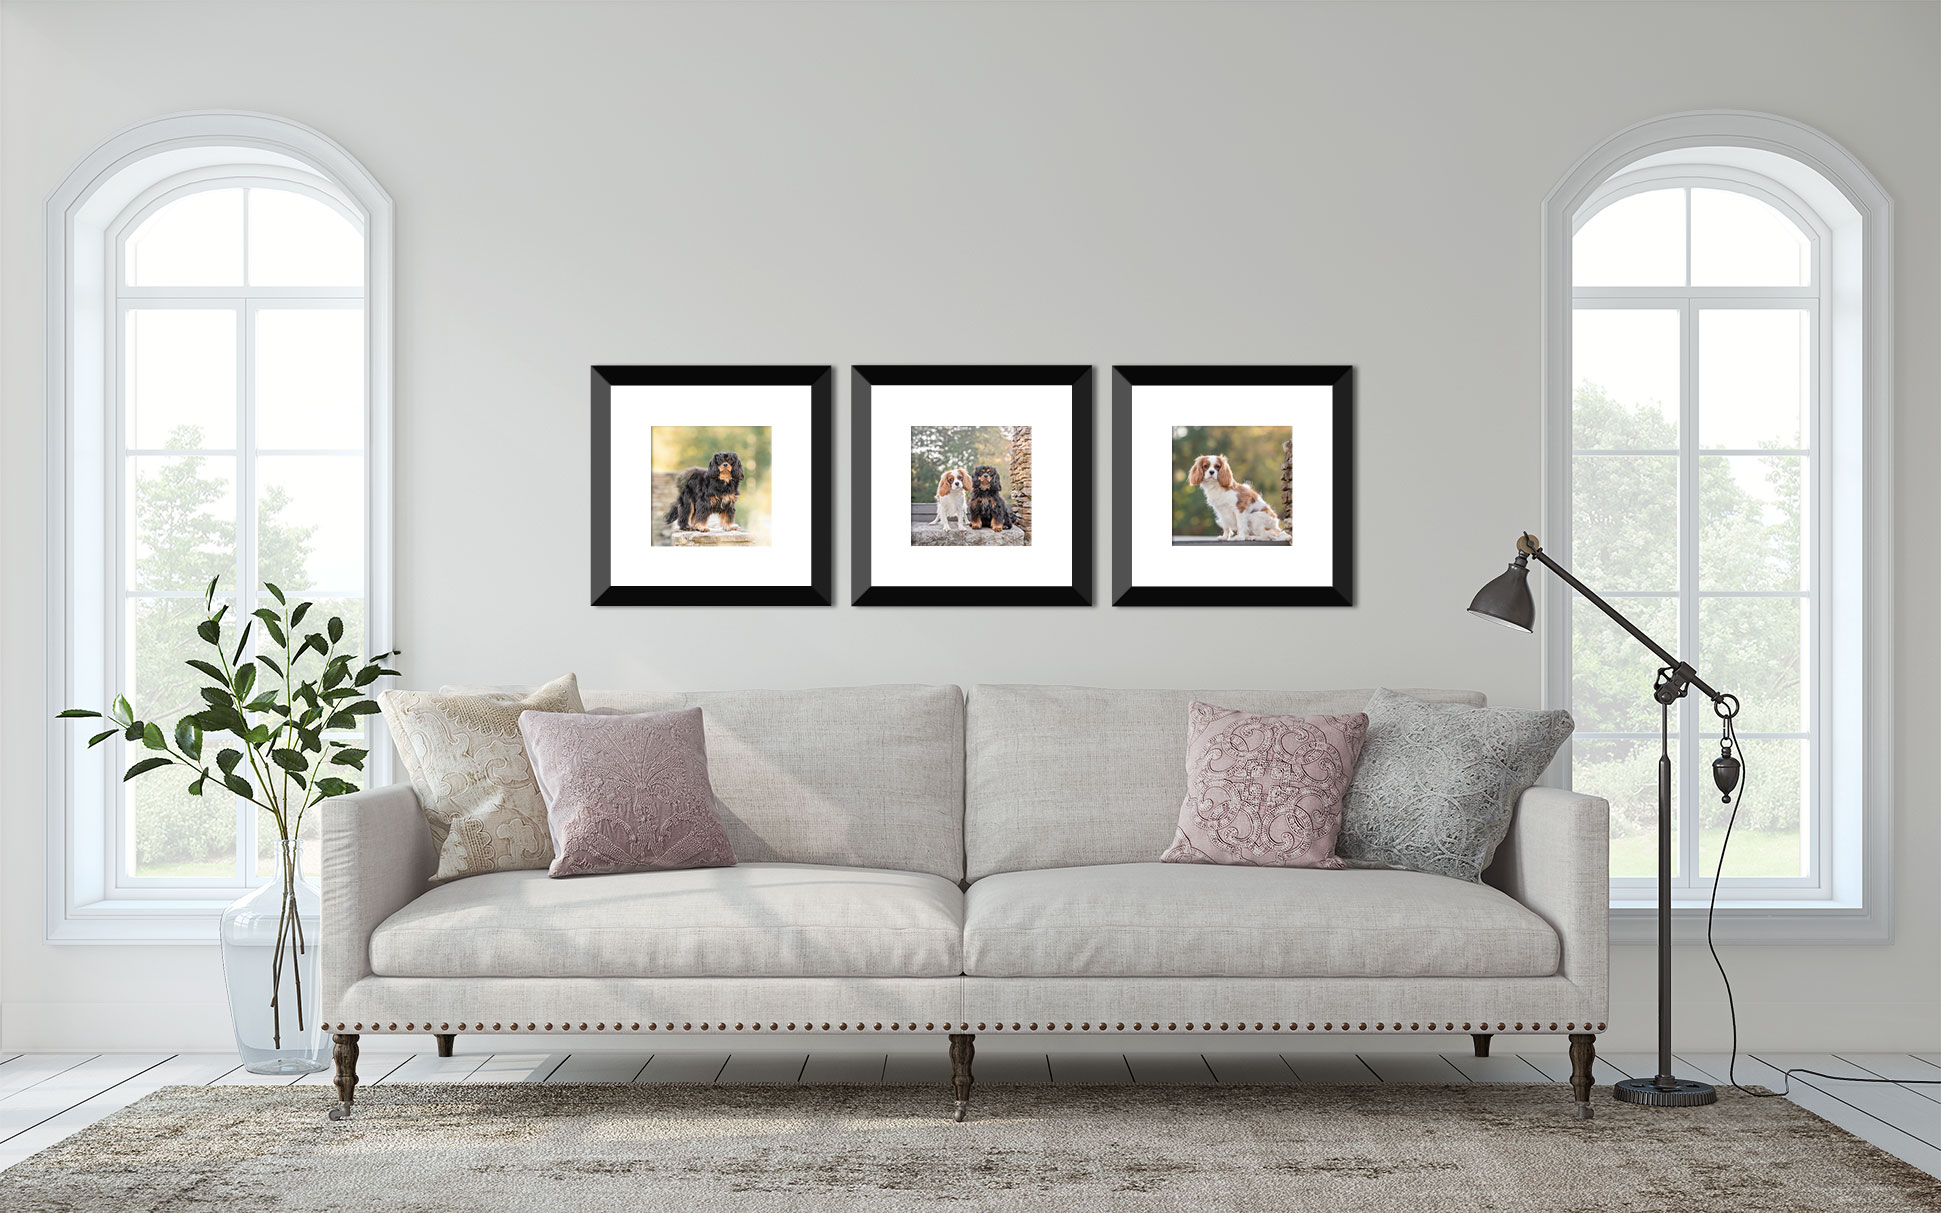 Atlanta dog photographer shares how to create a gallery wall with photos from your dog photography session.